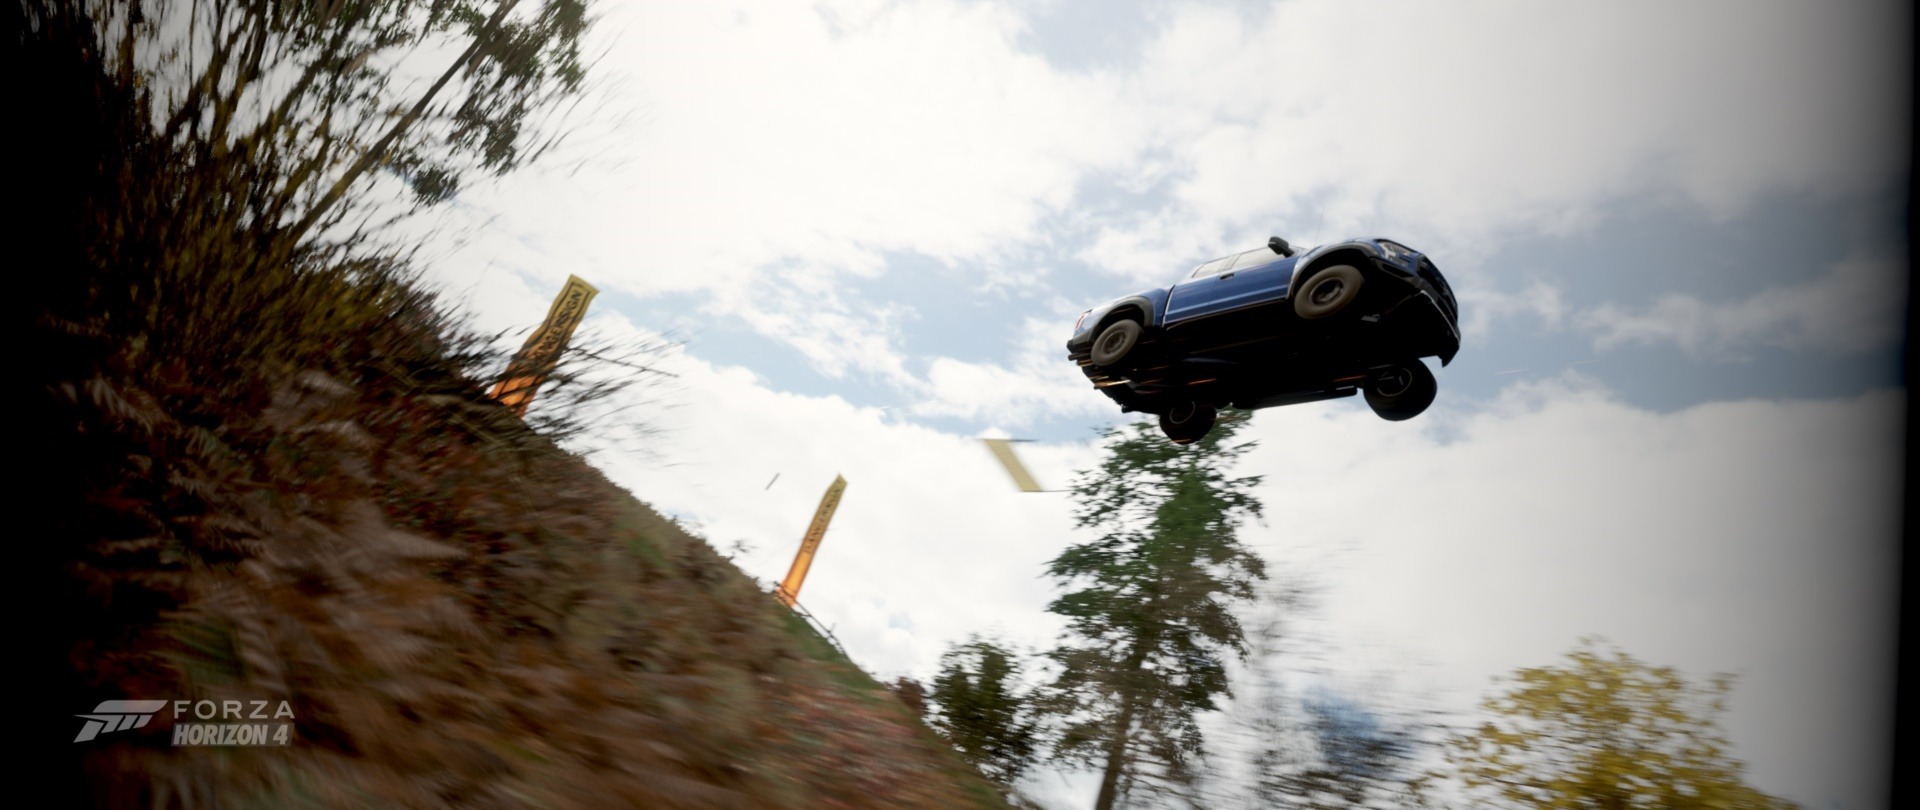 Forza Horizon 4 Review: Putting the pedal to the floor